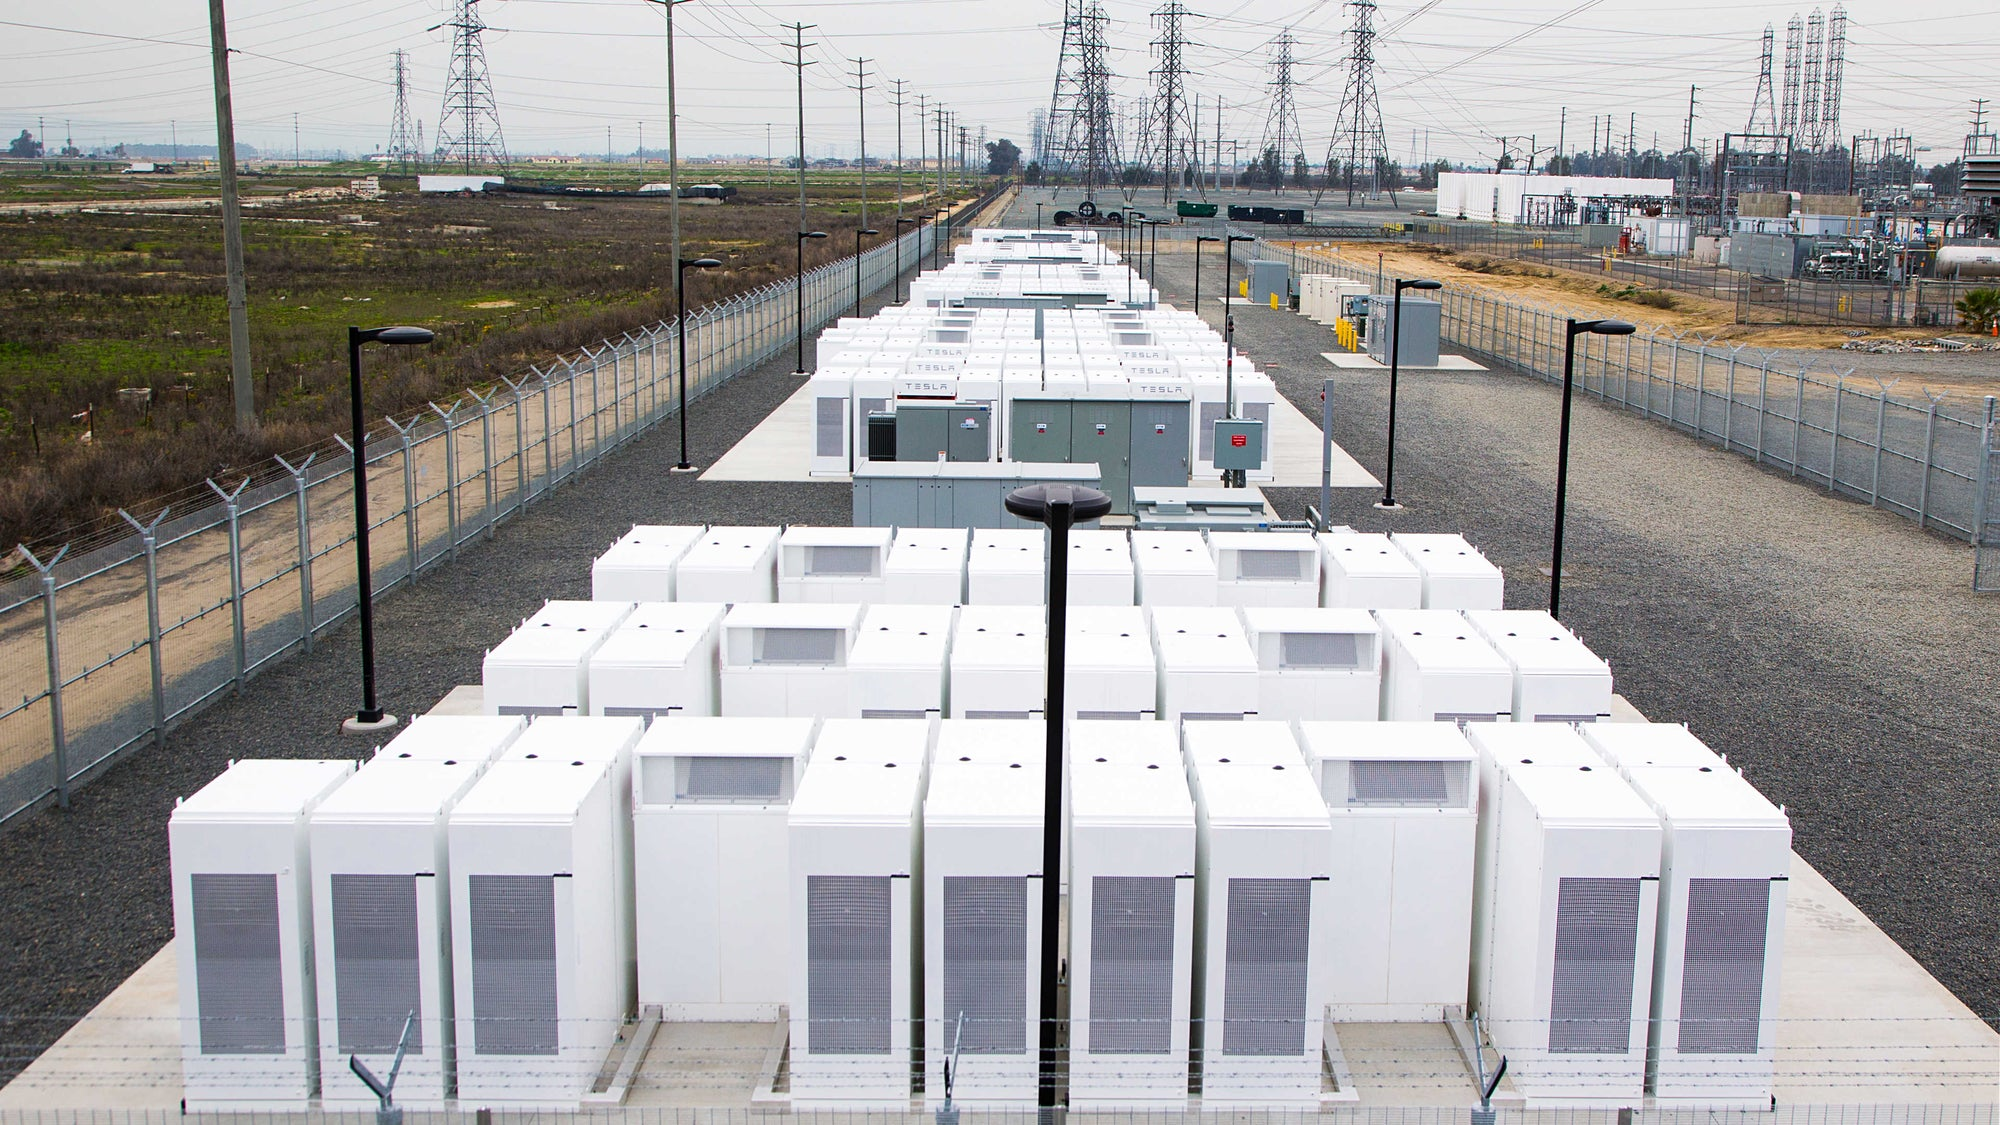 Tesla Huge Powerpack Battery Farm Extension Project in South Australia Is Completed